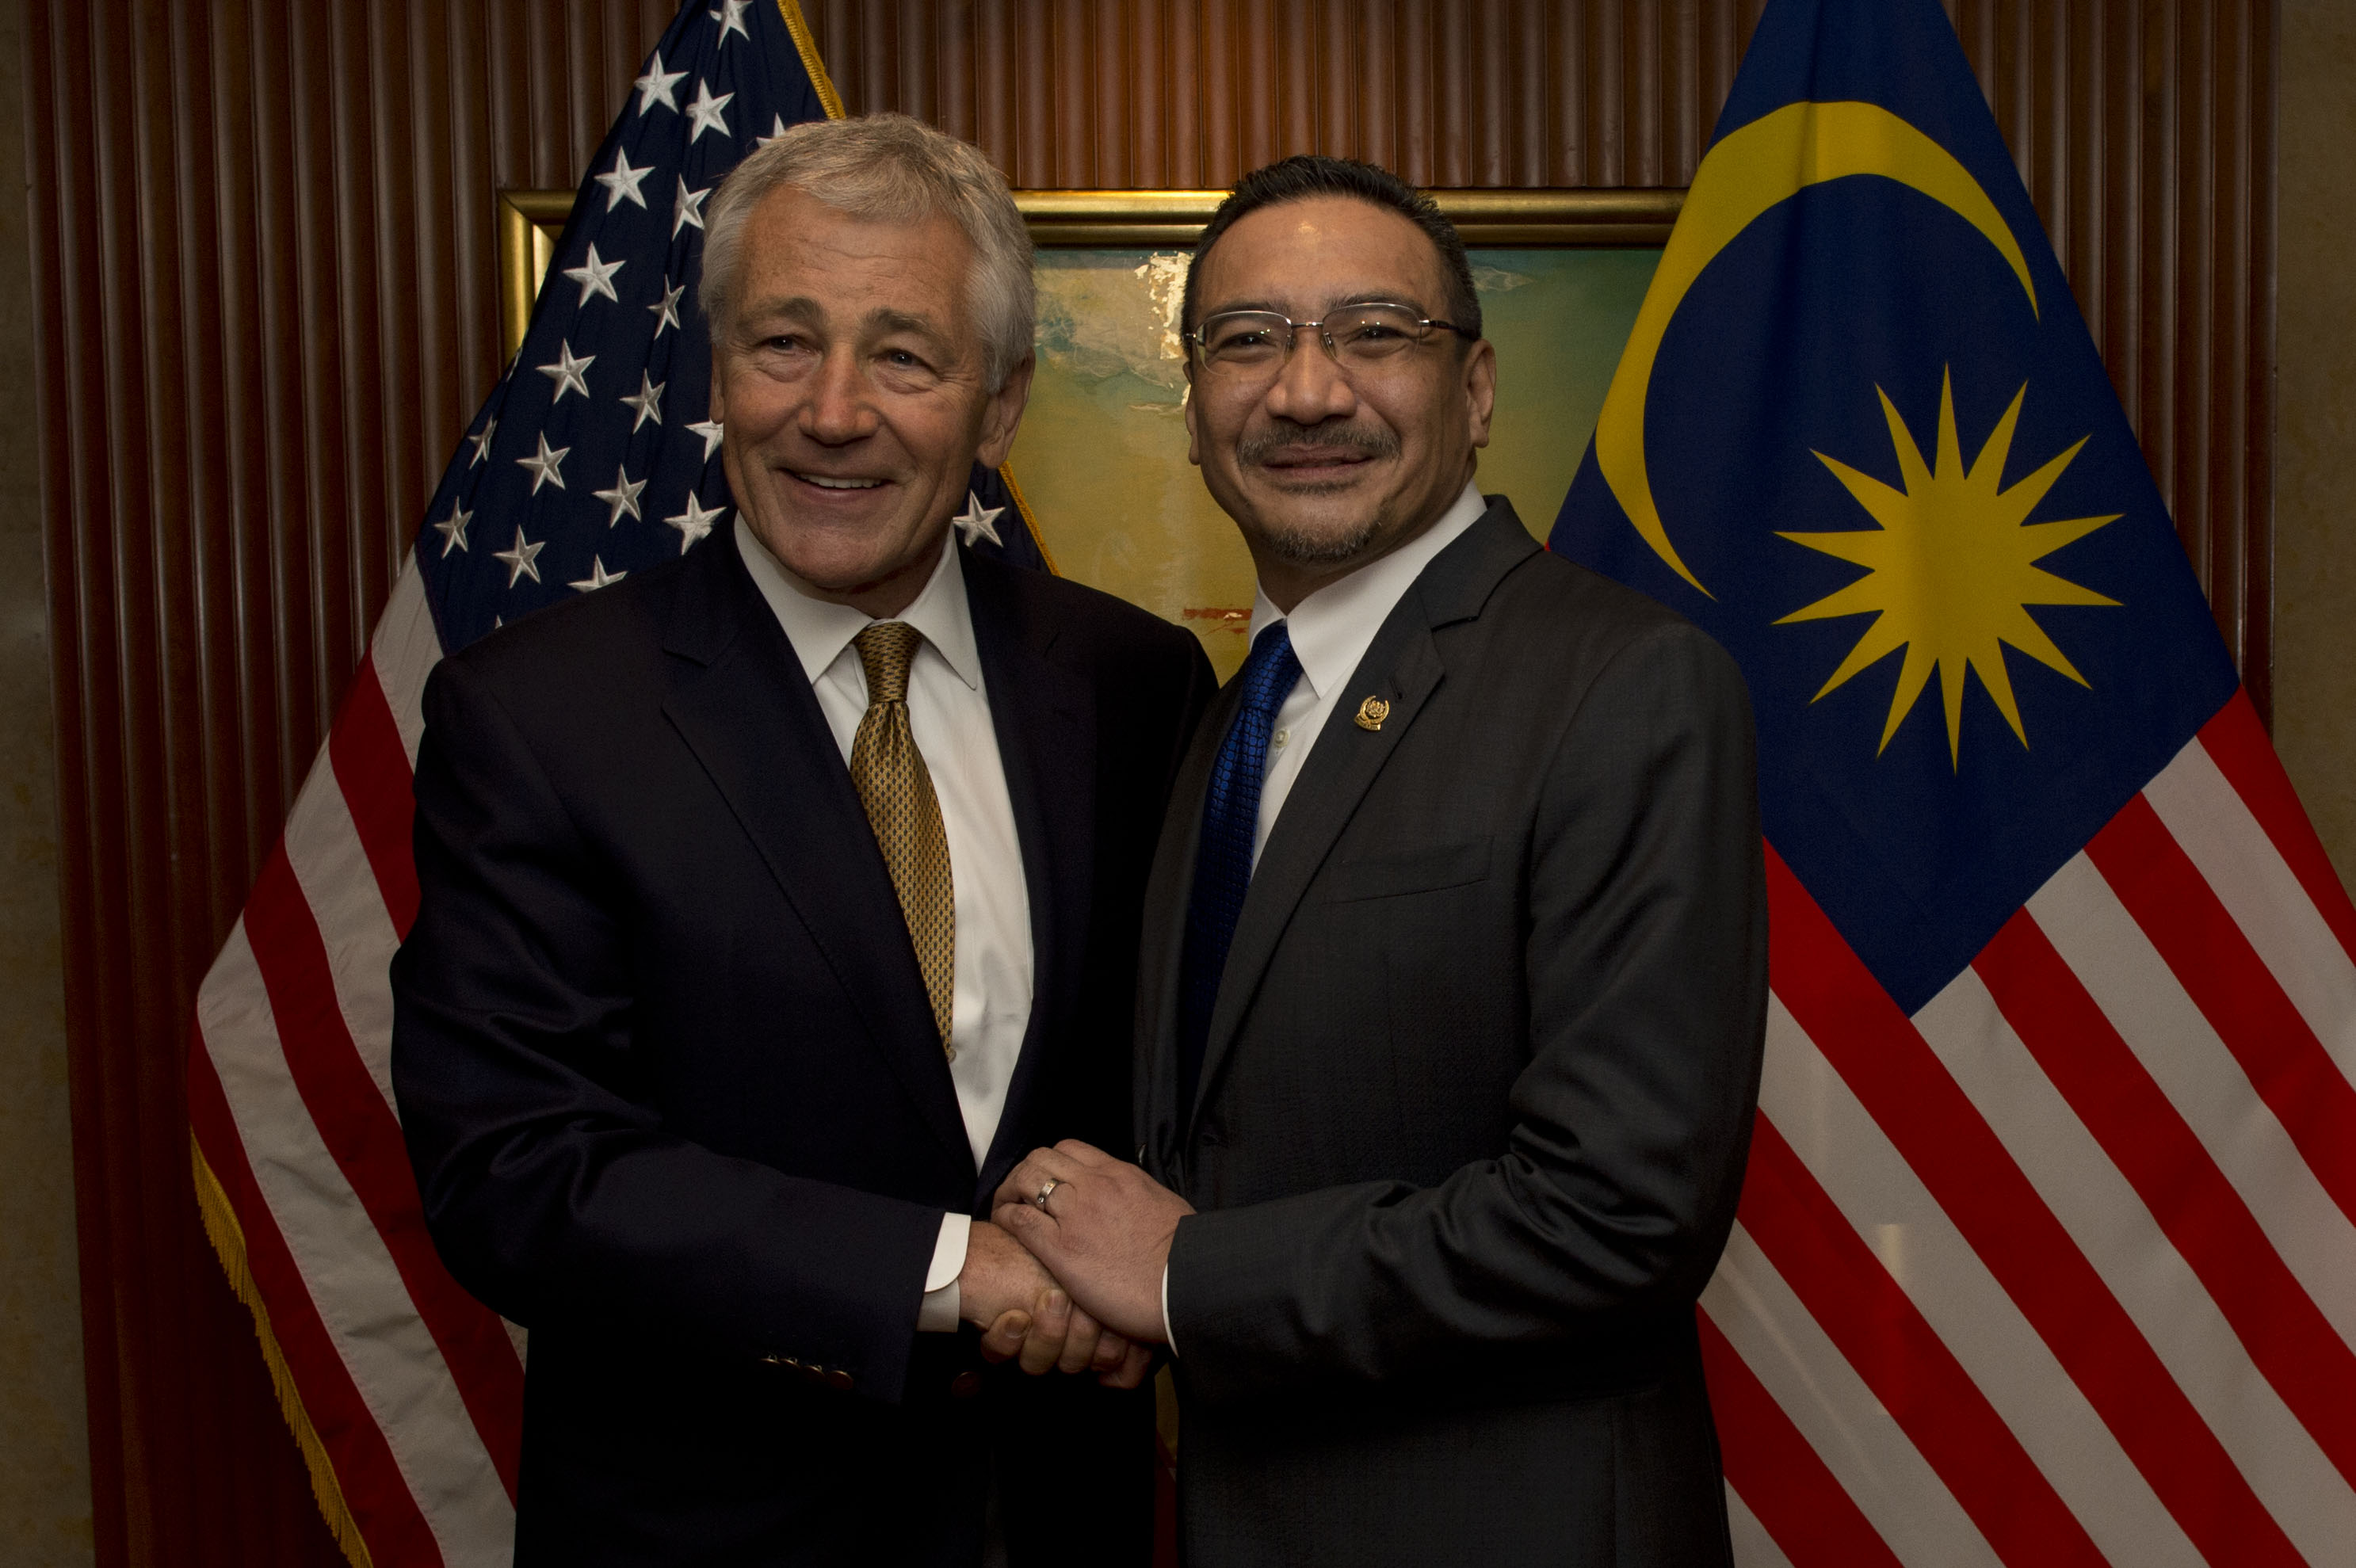 http://upload.wikimedia.org/wikipedia/commons/e/ee/Secretary_of_Defense_Chuck_Hagel_shakes_hands_with_Malaysian_Minister_of_Defense_Hishammuddin_Hussein.jpg